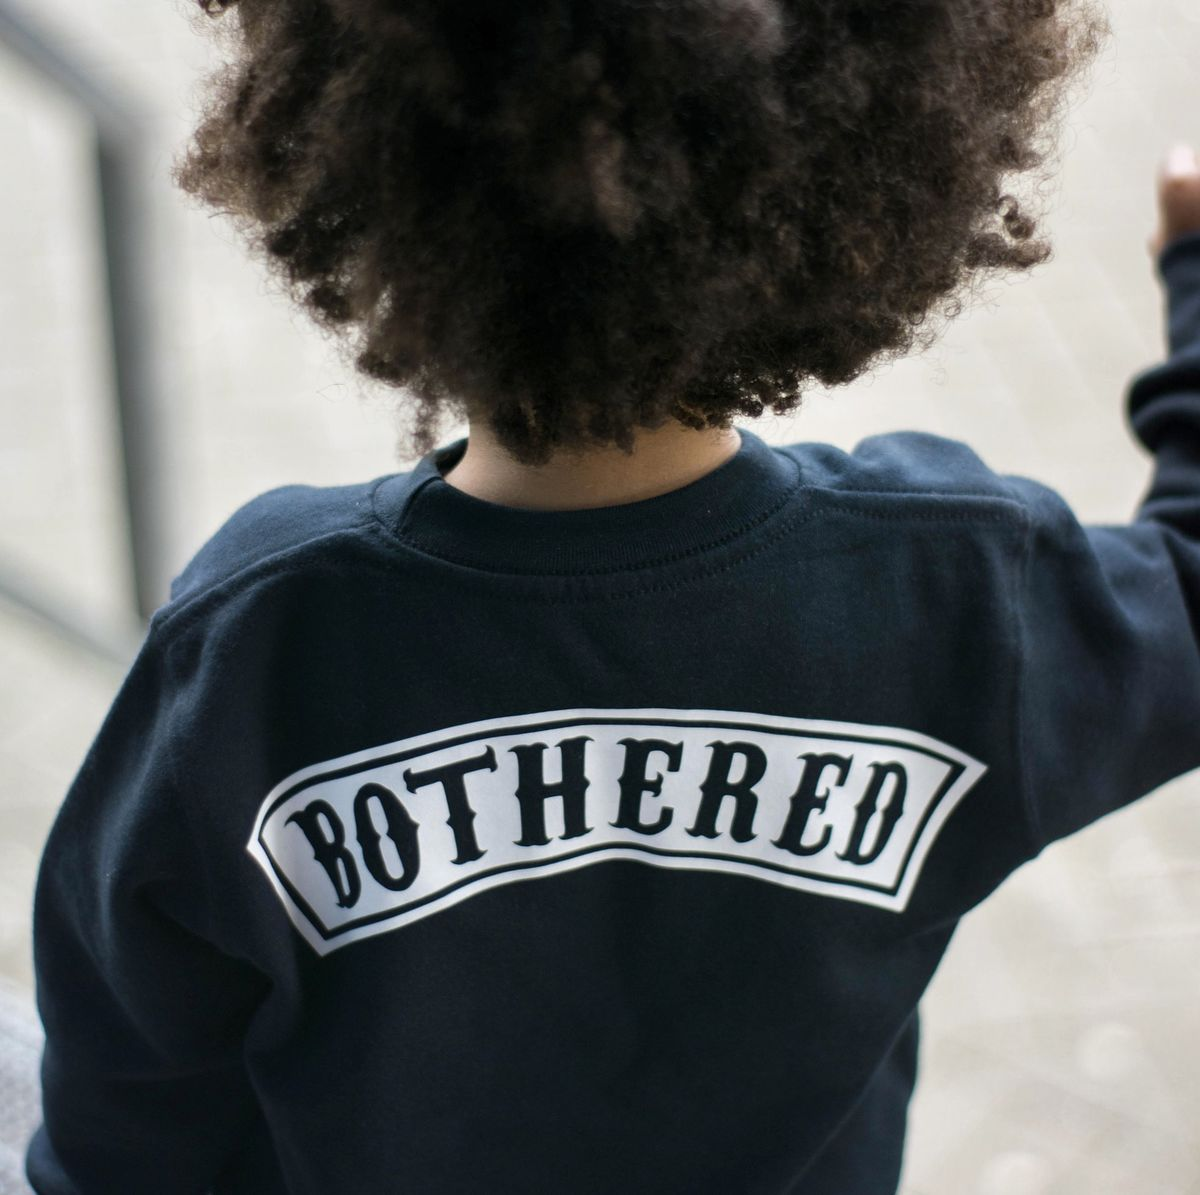 'Bothered' Kids Sweatshirt (various sizes) - product images  of